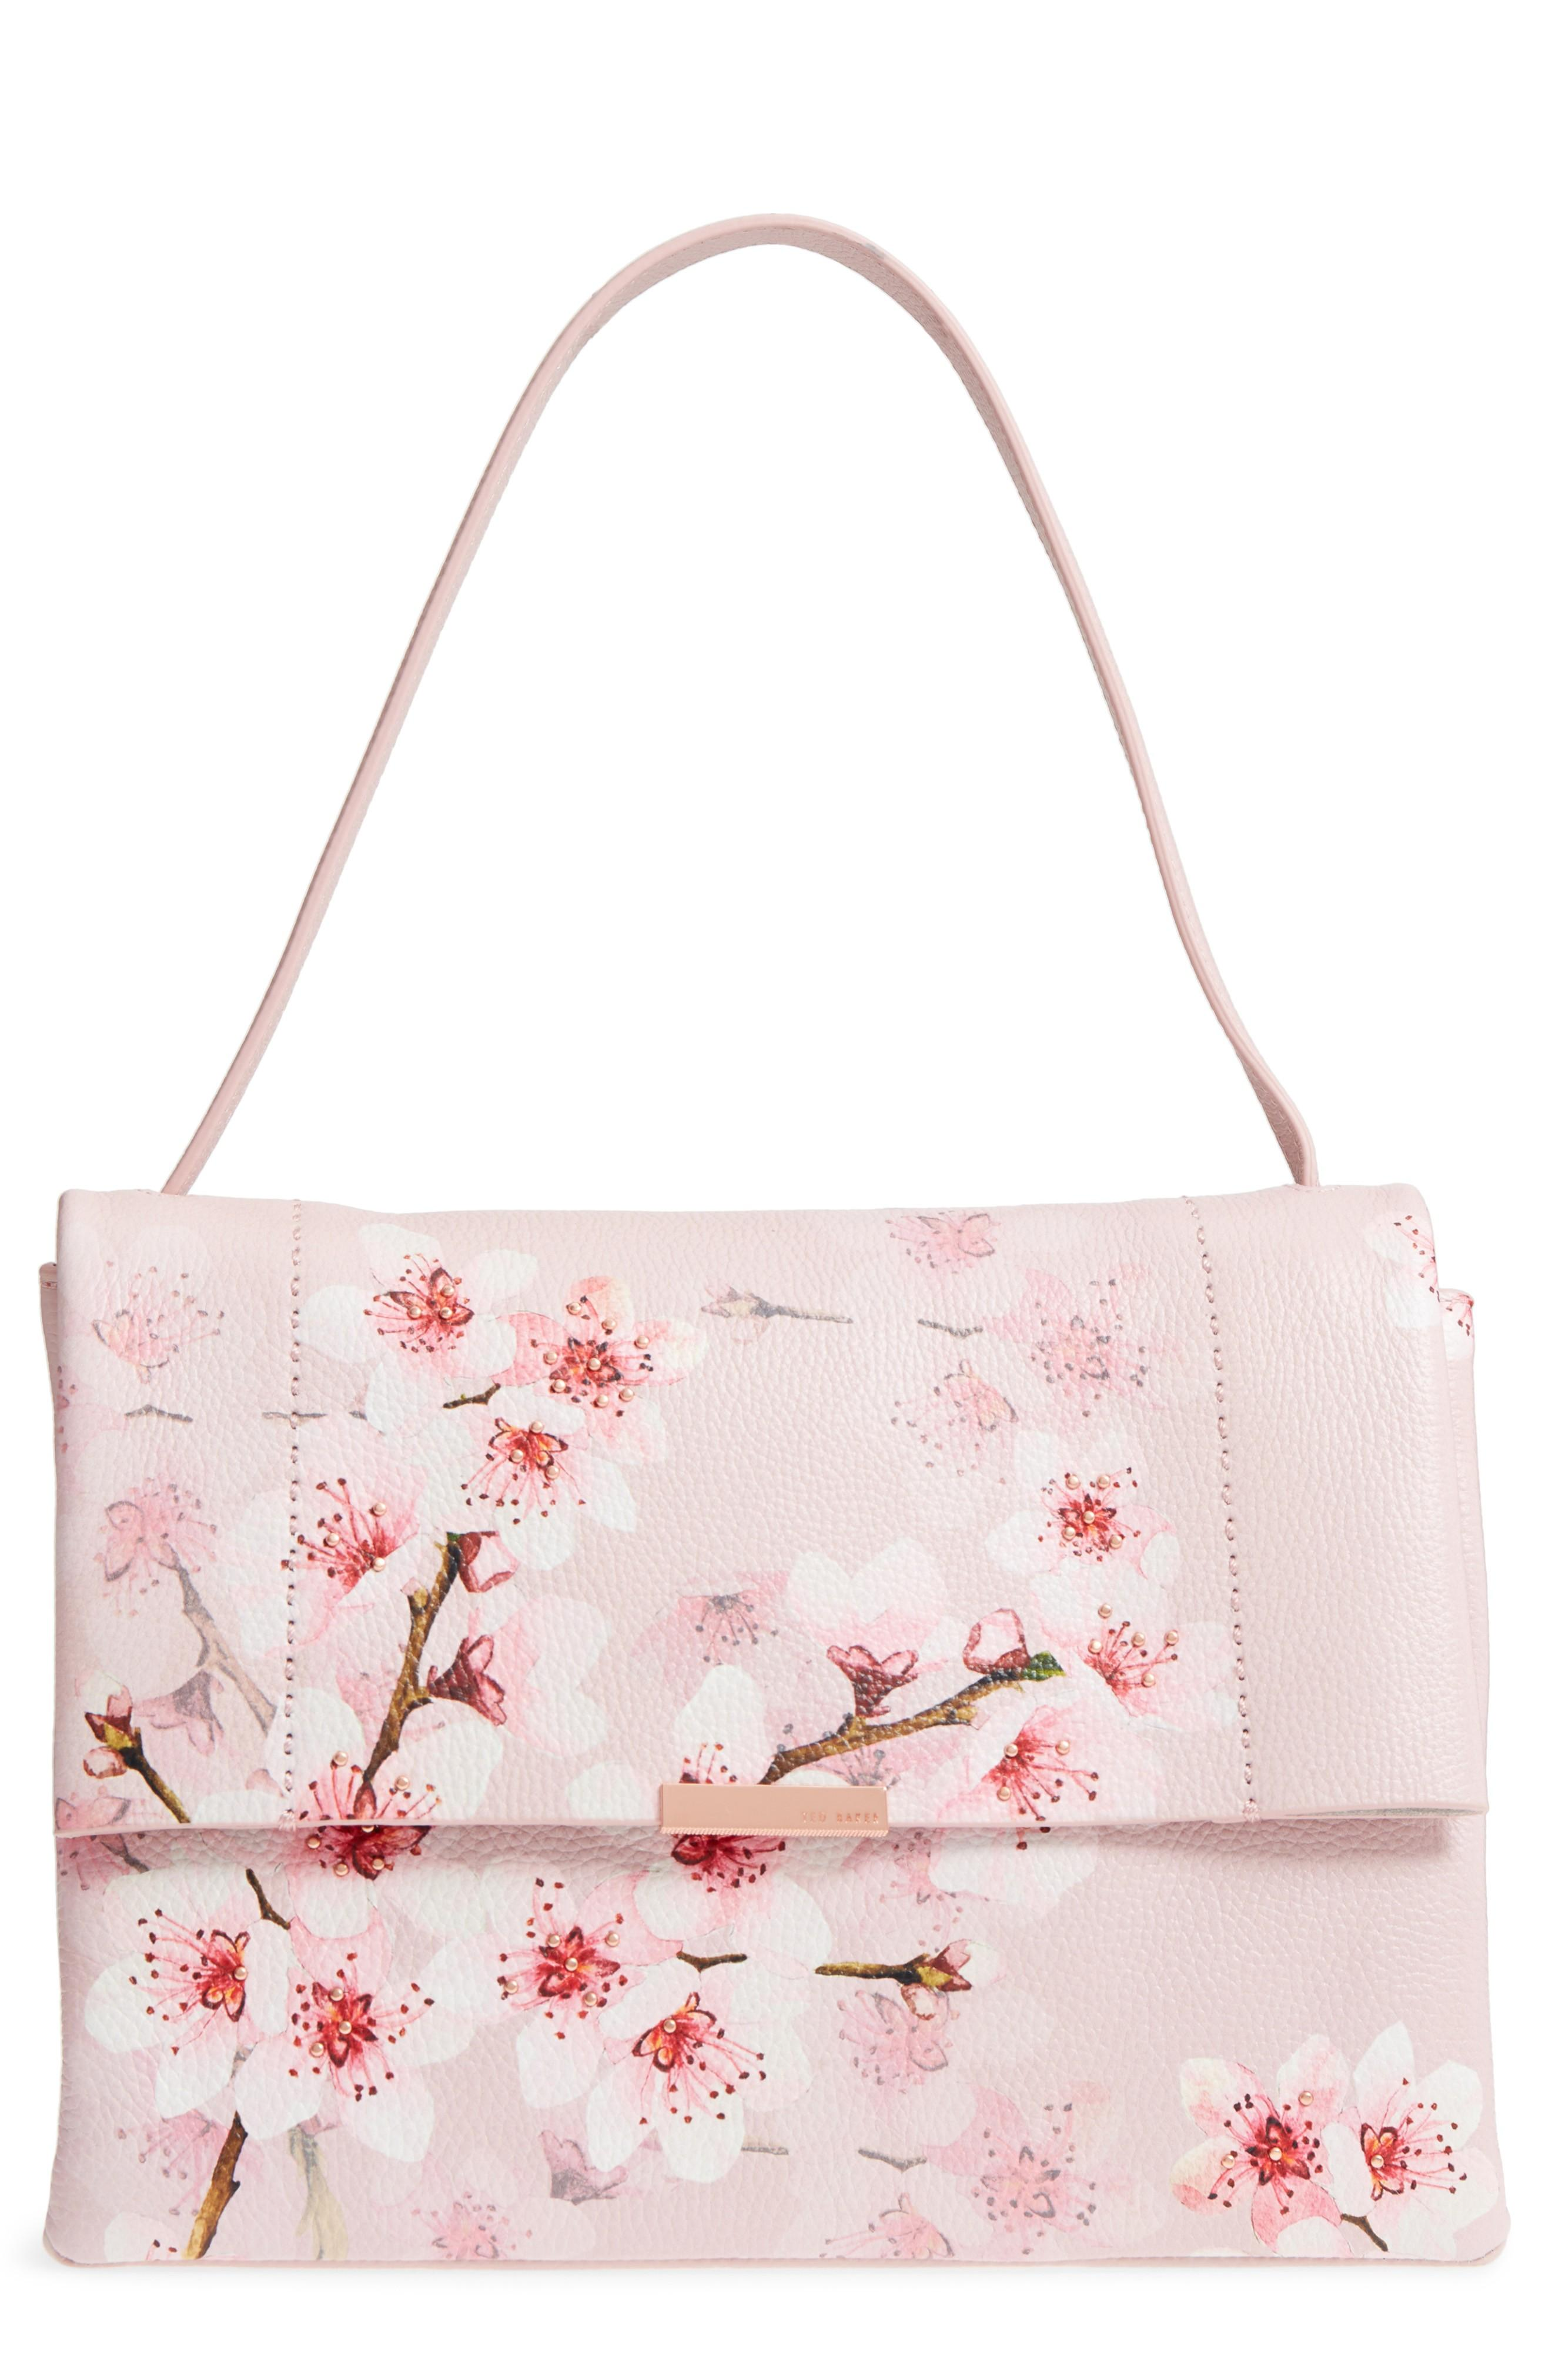 Ted Baker Jayde Soft Blossom Leather Shoulder Bag - Pink In Light Pink